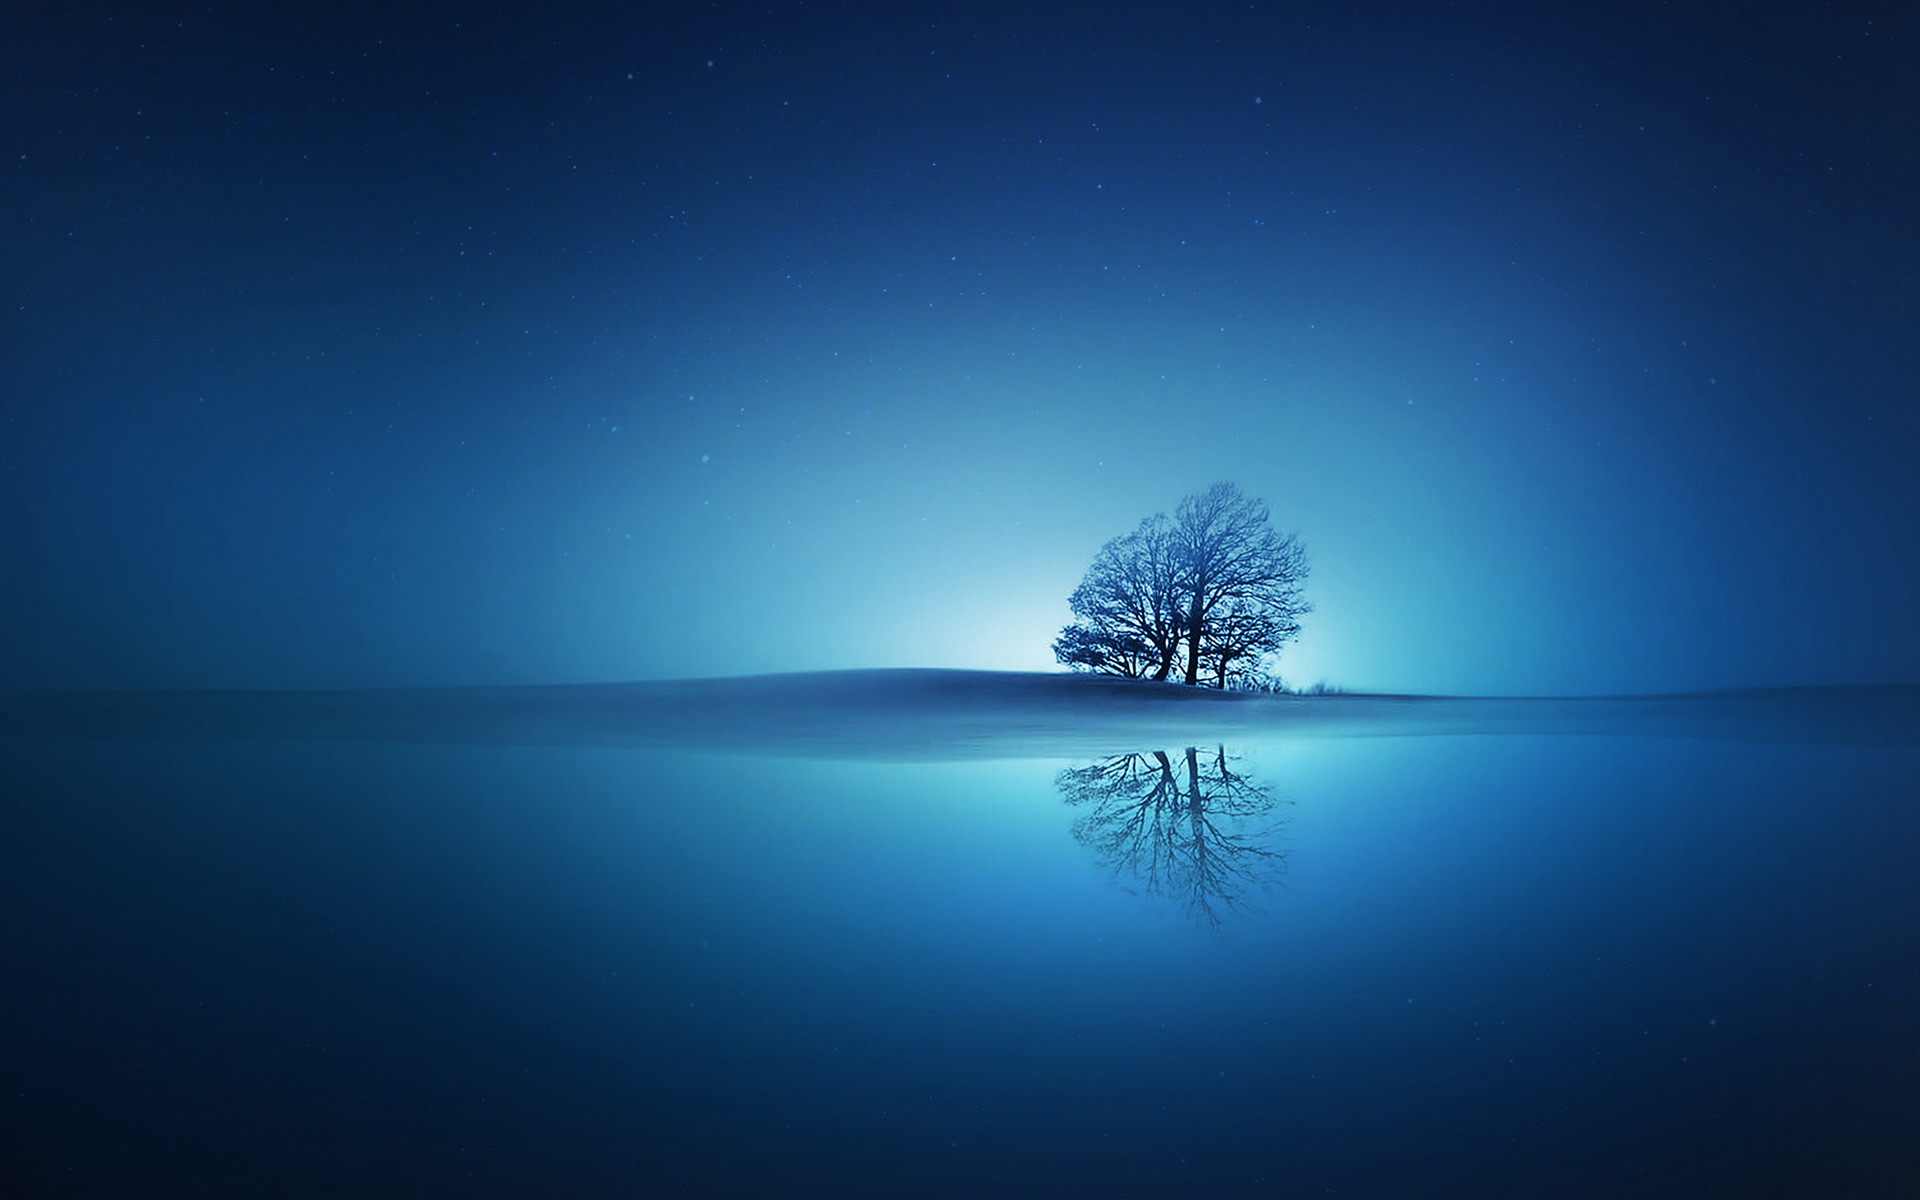 Blue Laptop Wallpaper Posted By Christopher Johnson